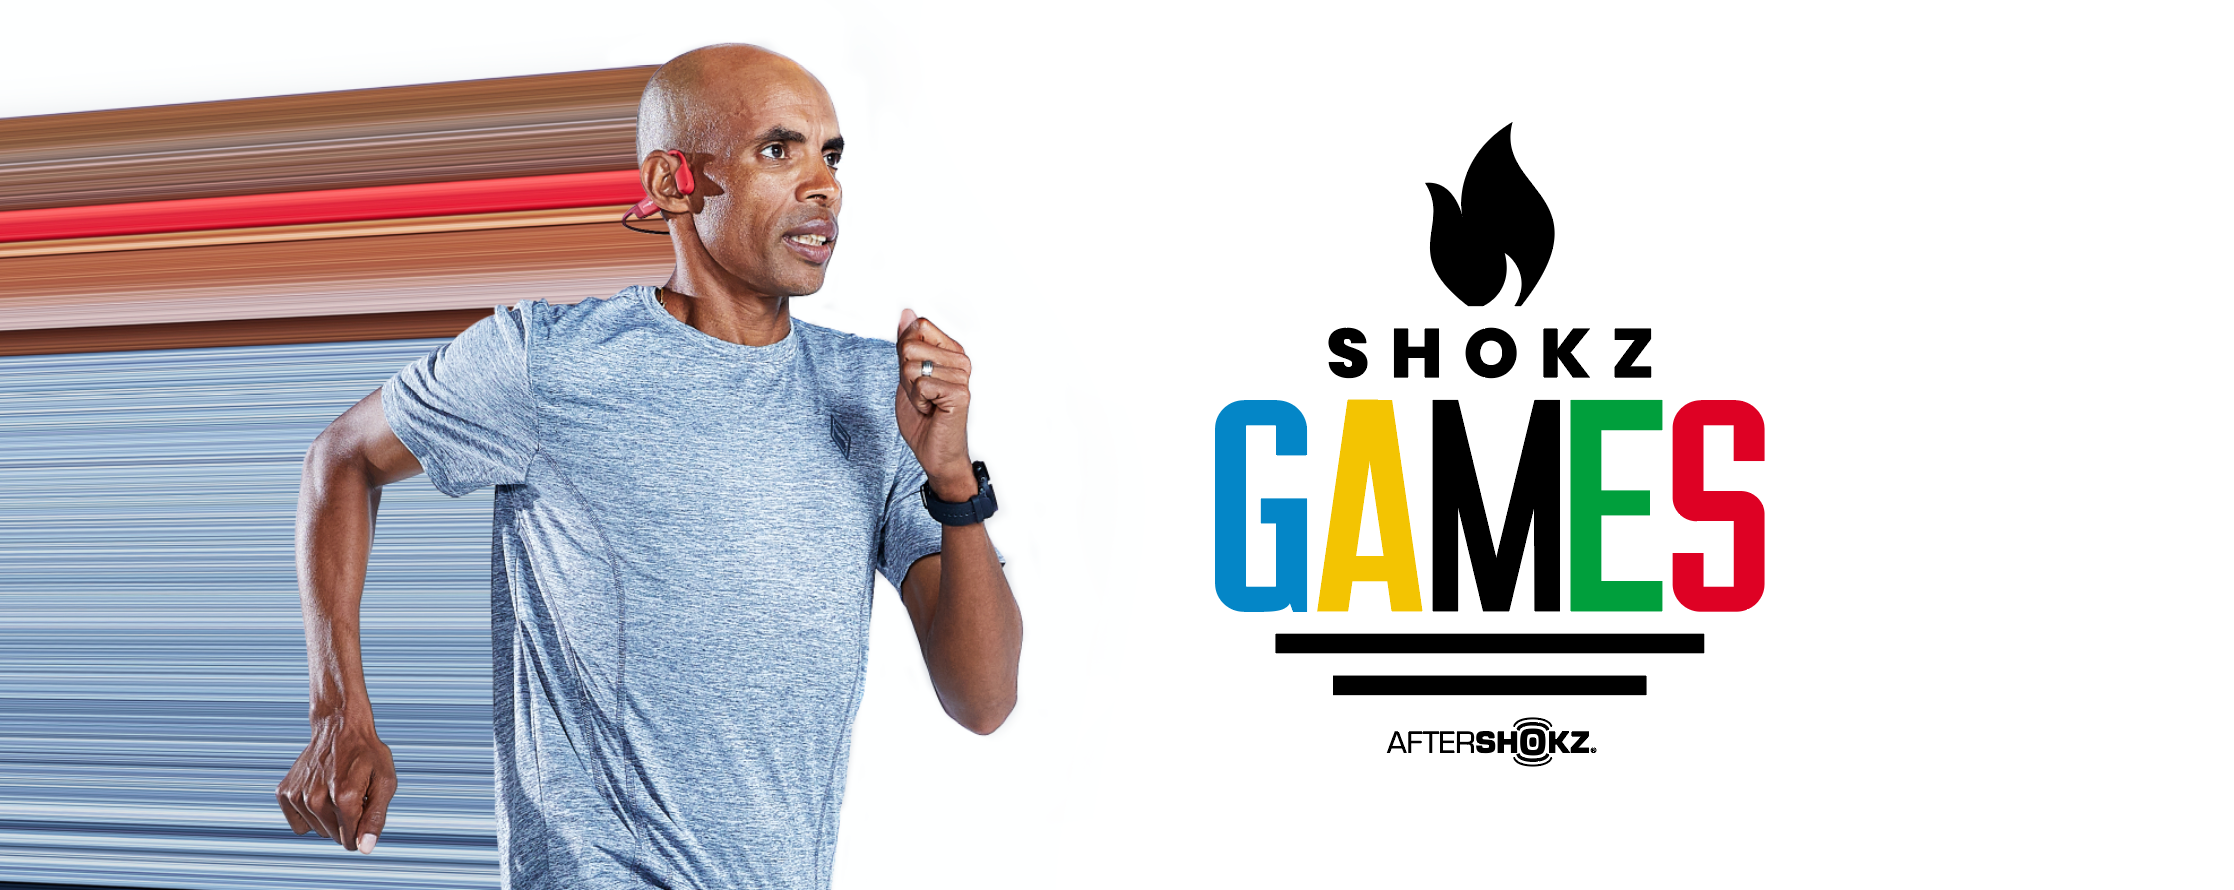 Introducing The Shokz Games